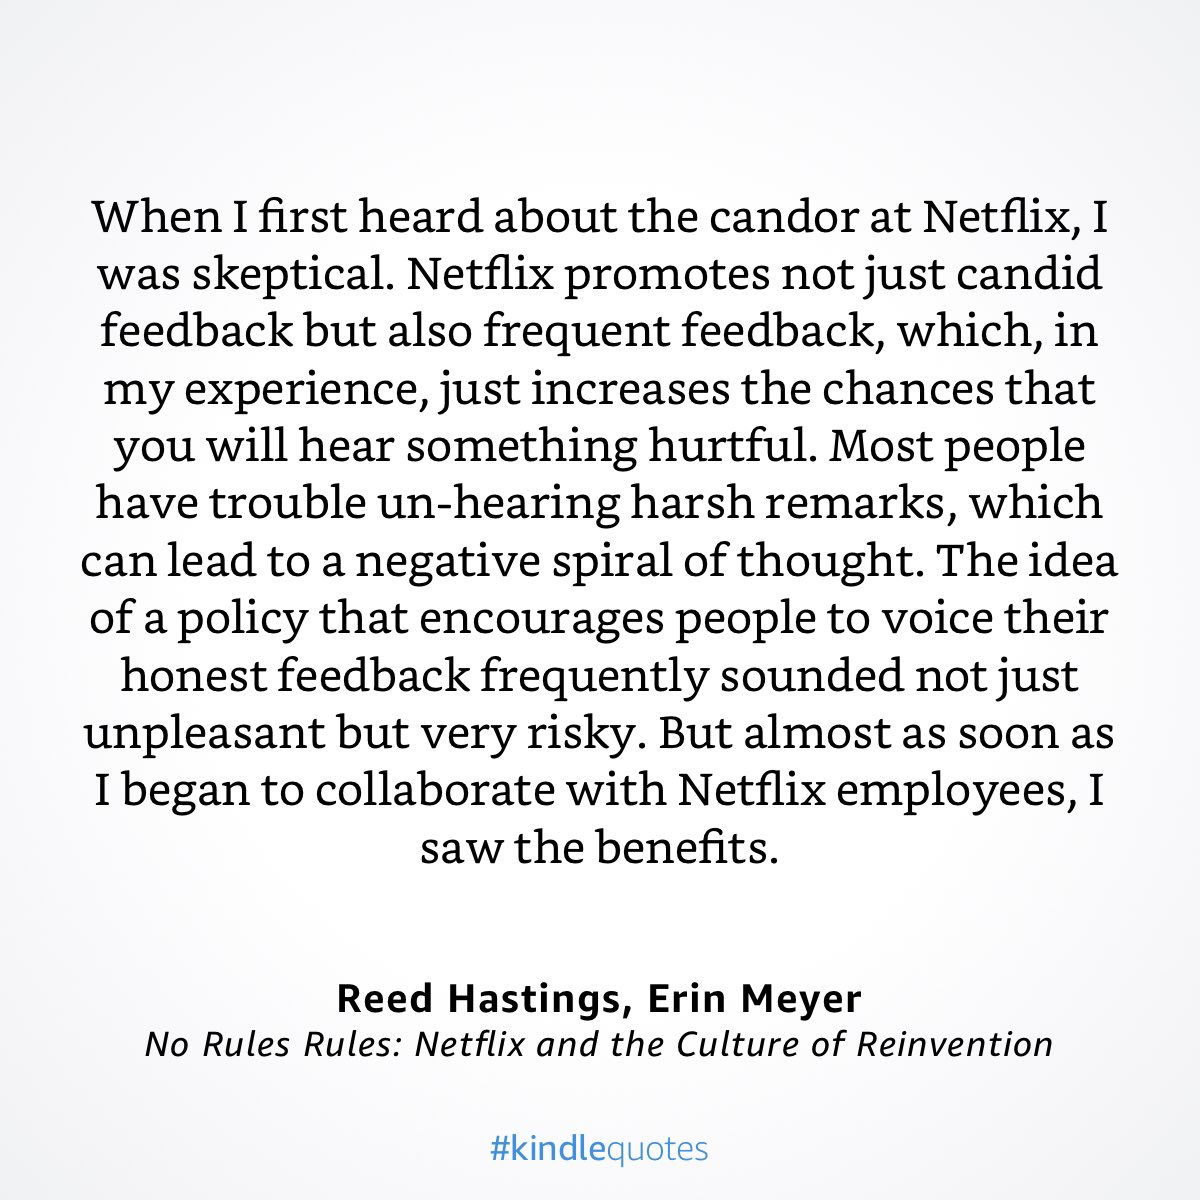 This book is a must read. Must must read. No Rules Rules by @reedhastings and @ErinMeyerINSEAD. Absolutely epic!